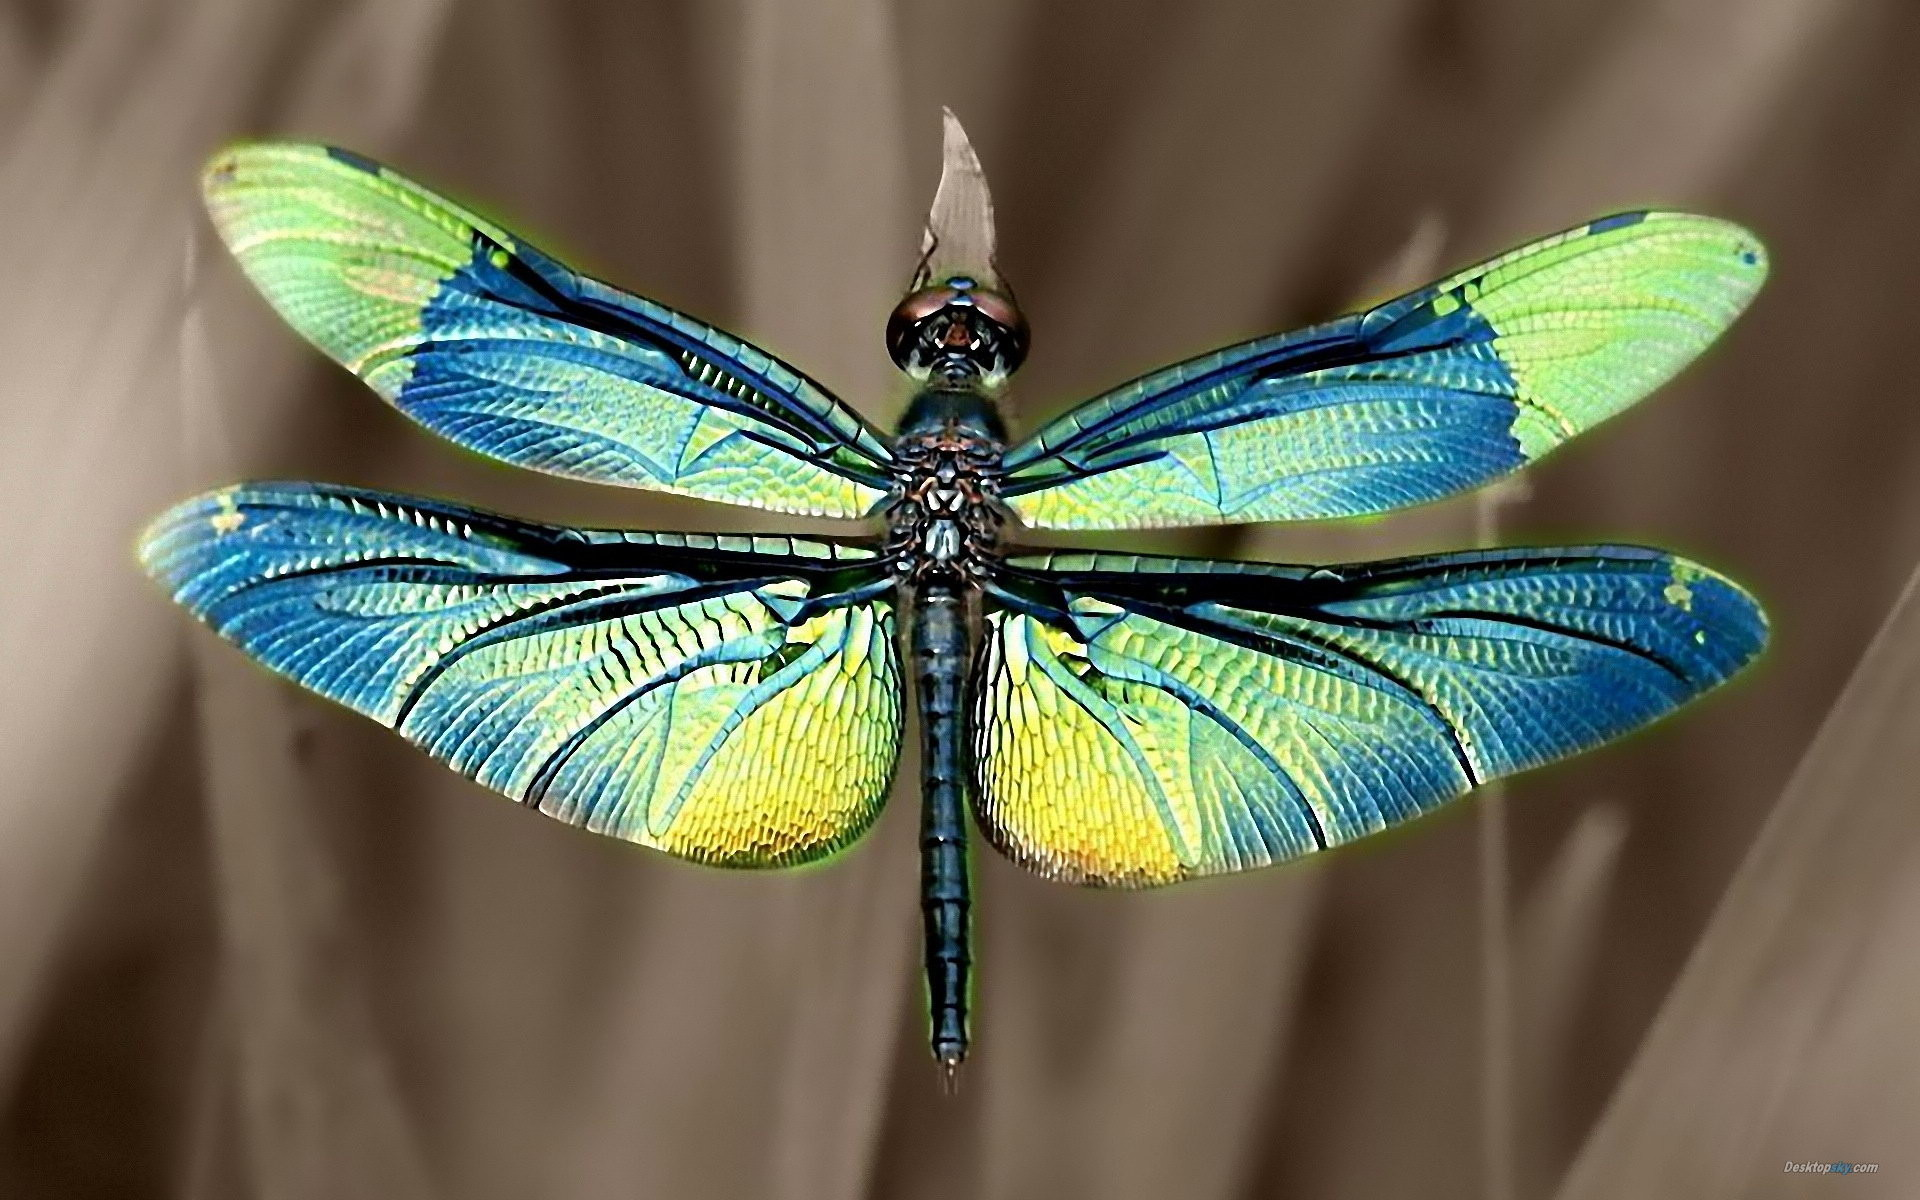 Res: 1920x1200, Dragonfly Wallpapers 23 - 1920 X 1200